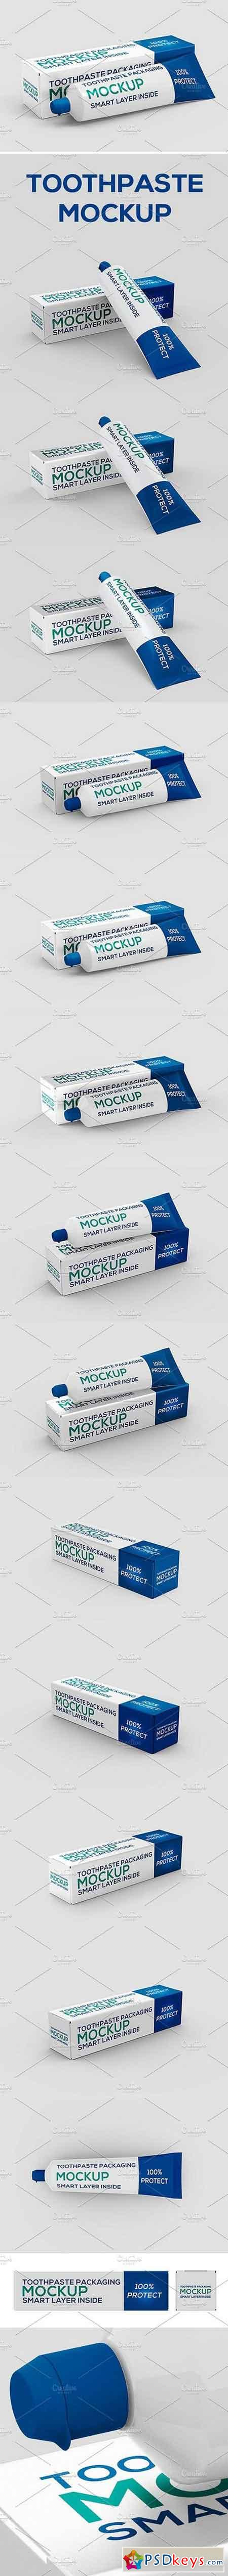 Toothpaste Packaging Mock-up 1617302